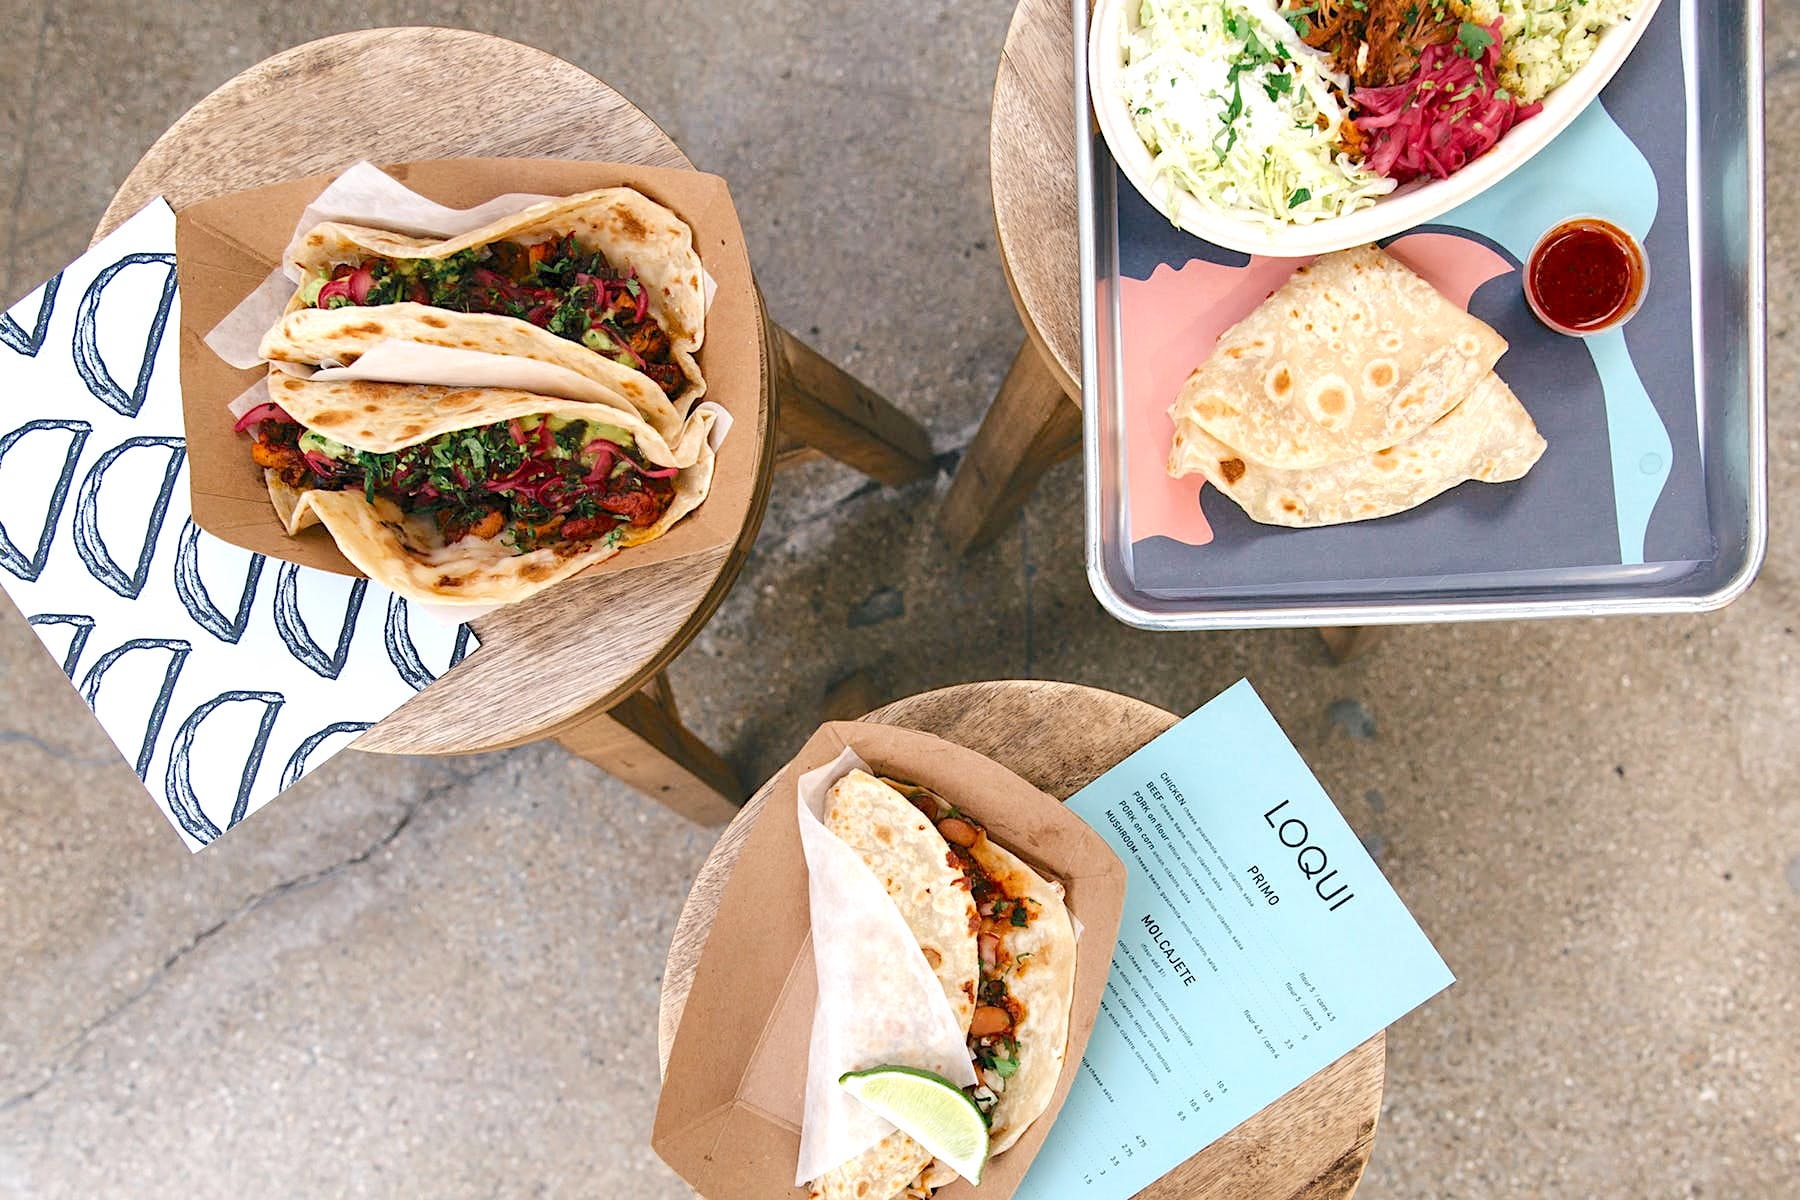 Culver City's Cult Favorite Taco Restaurant Takes a Spot in Booming Arts District